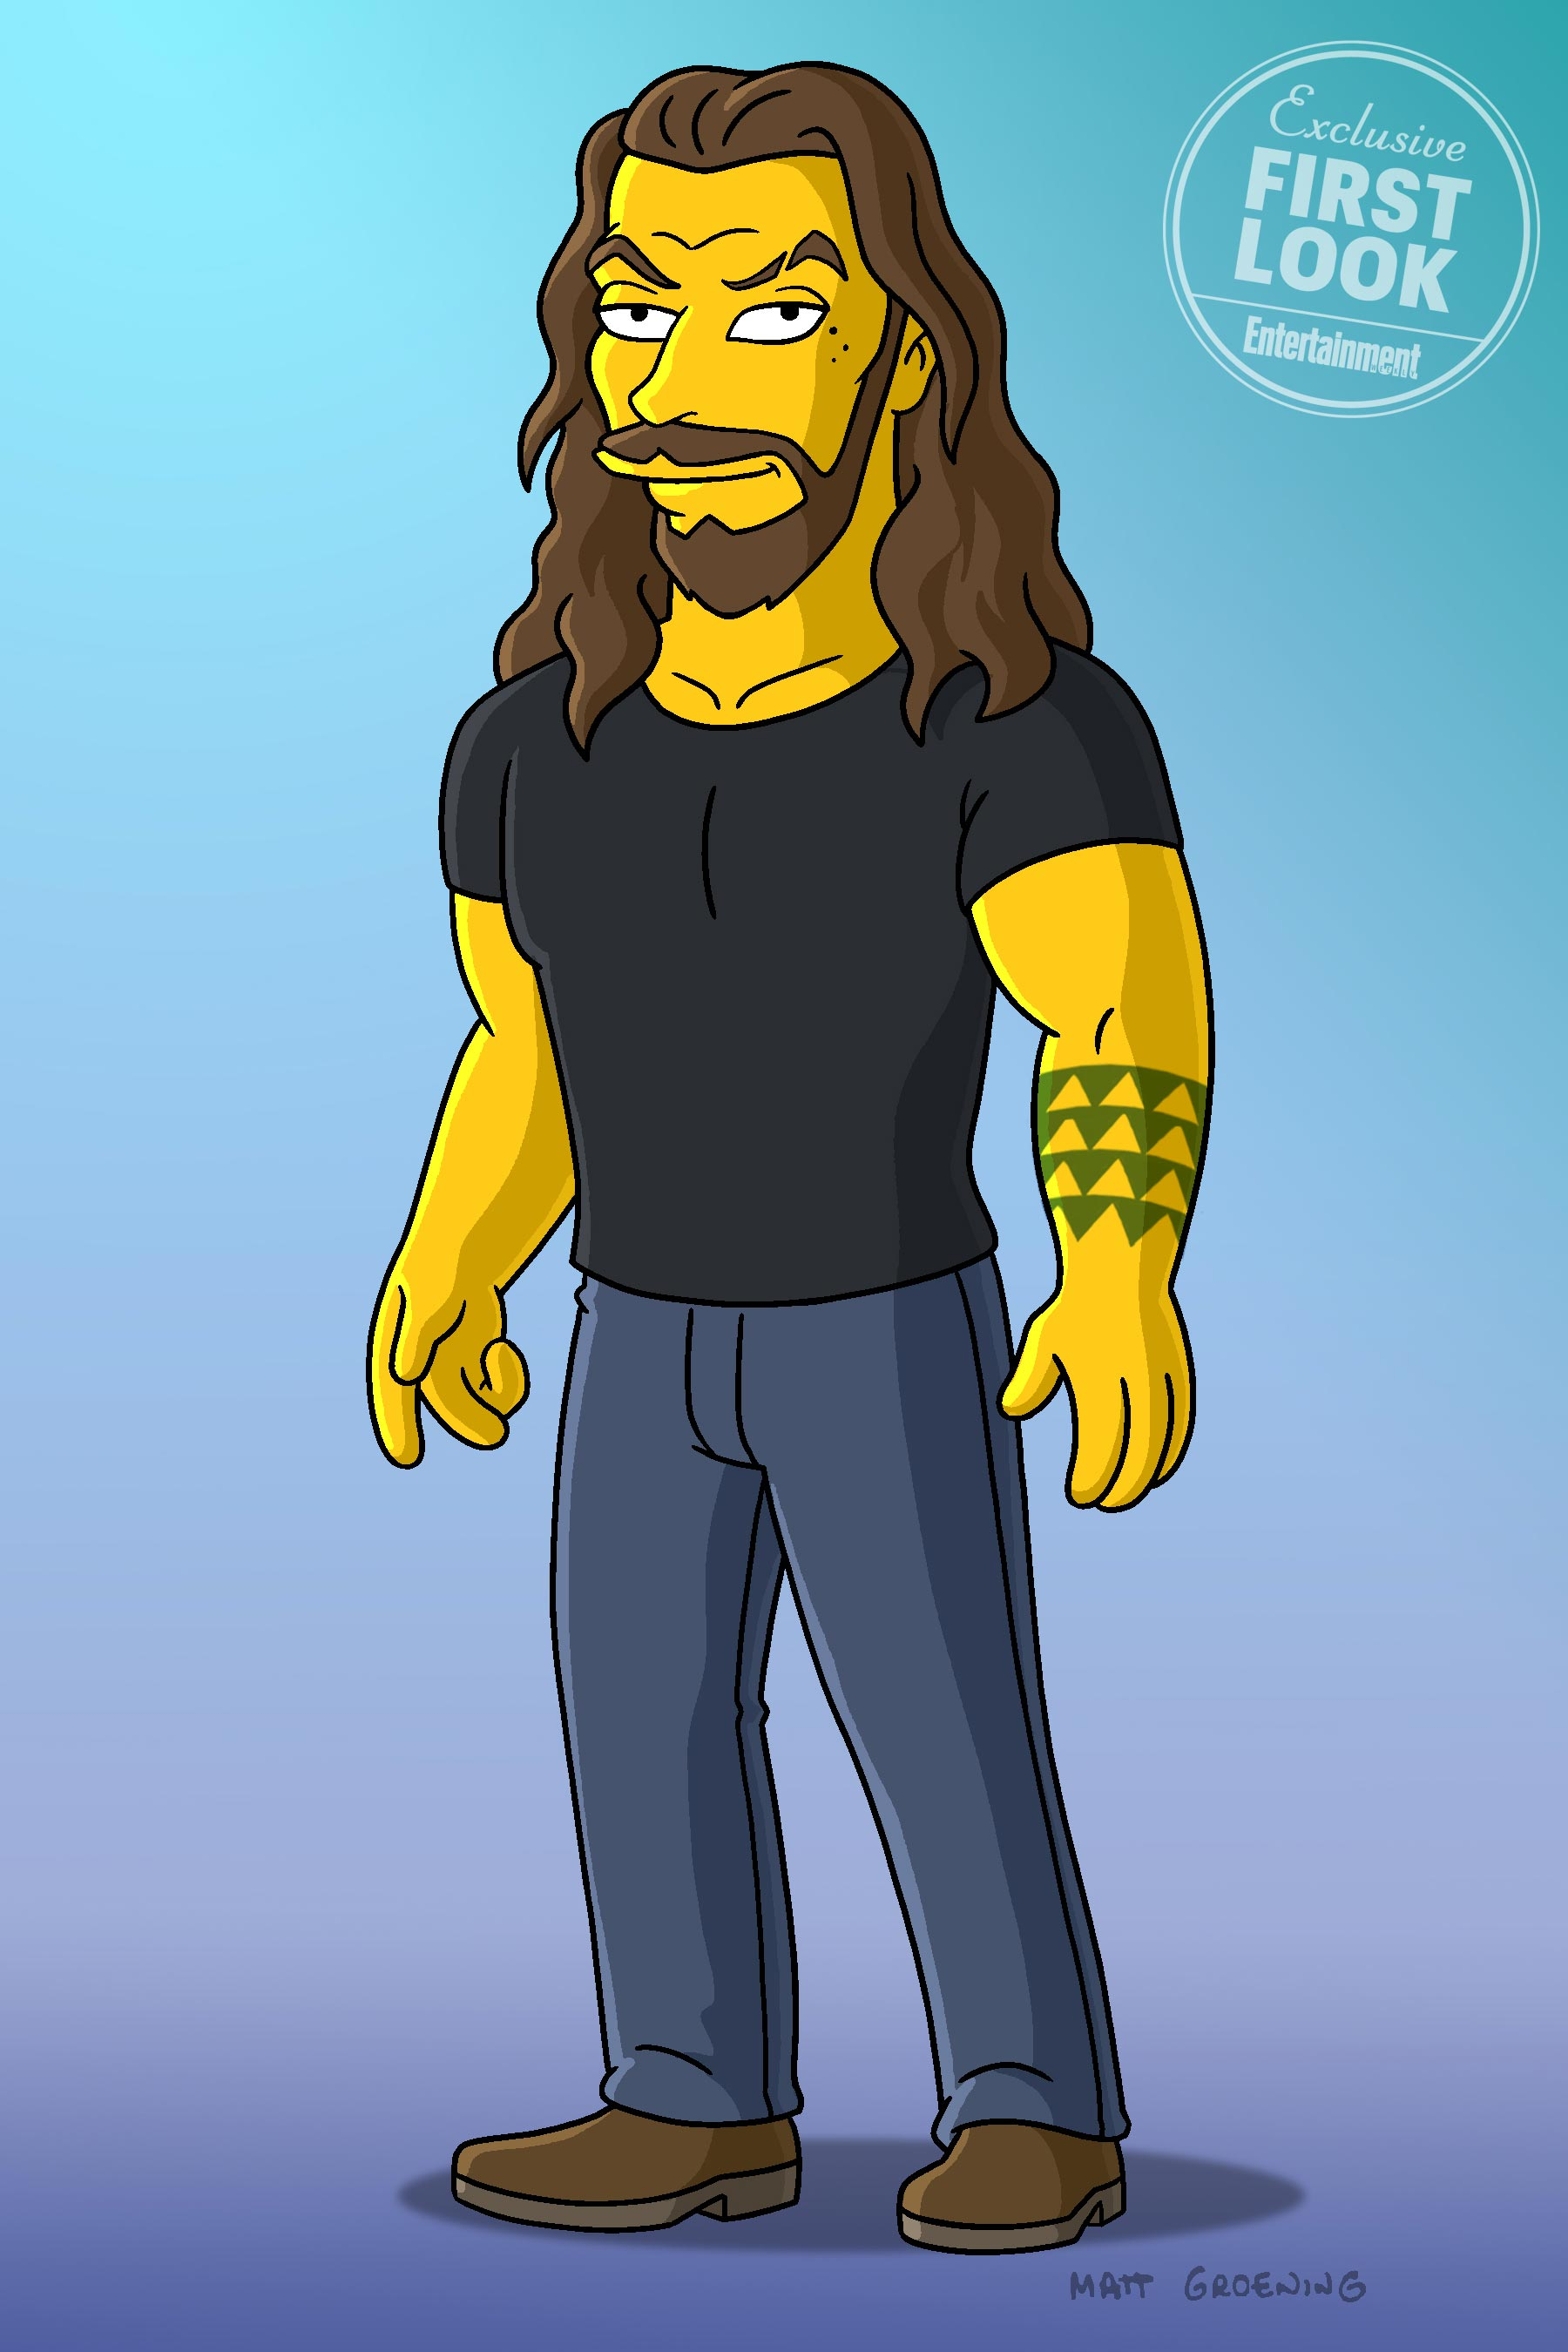 Game of Thrones alum Jason Momoa to guest on The Simpsons: First look